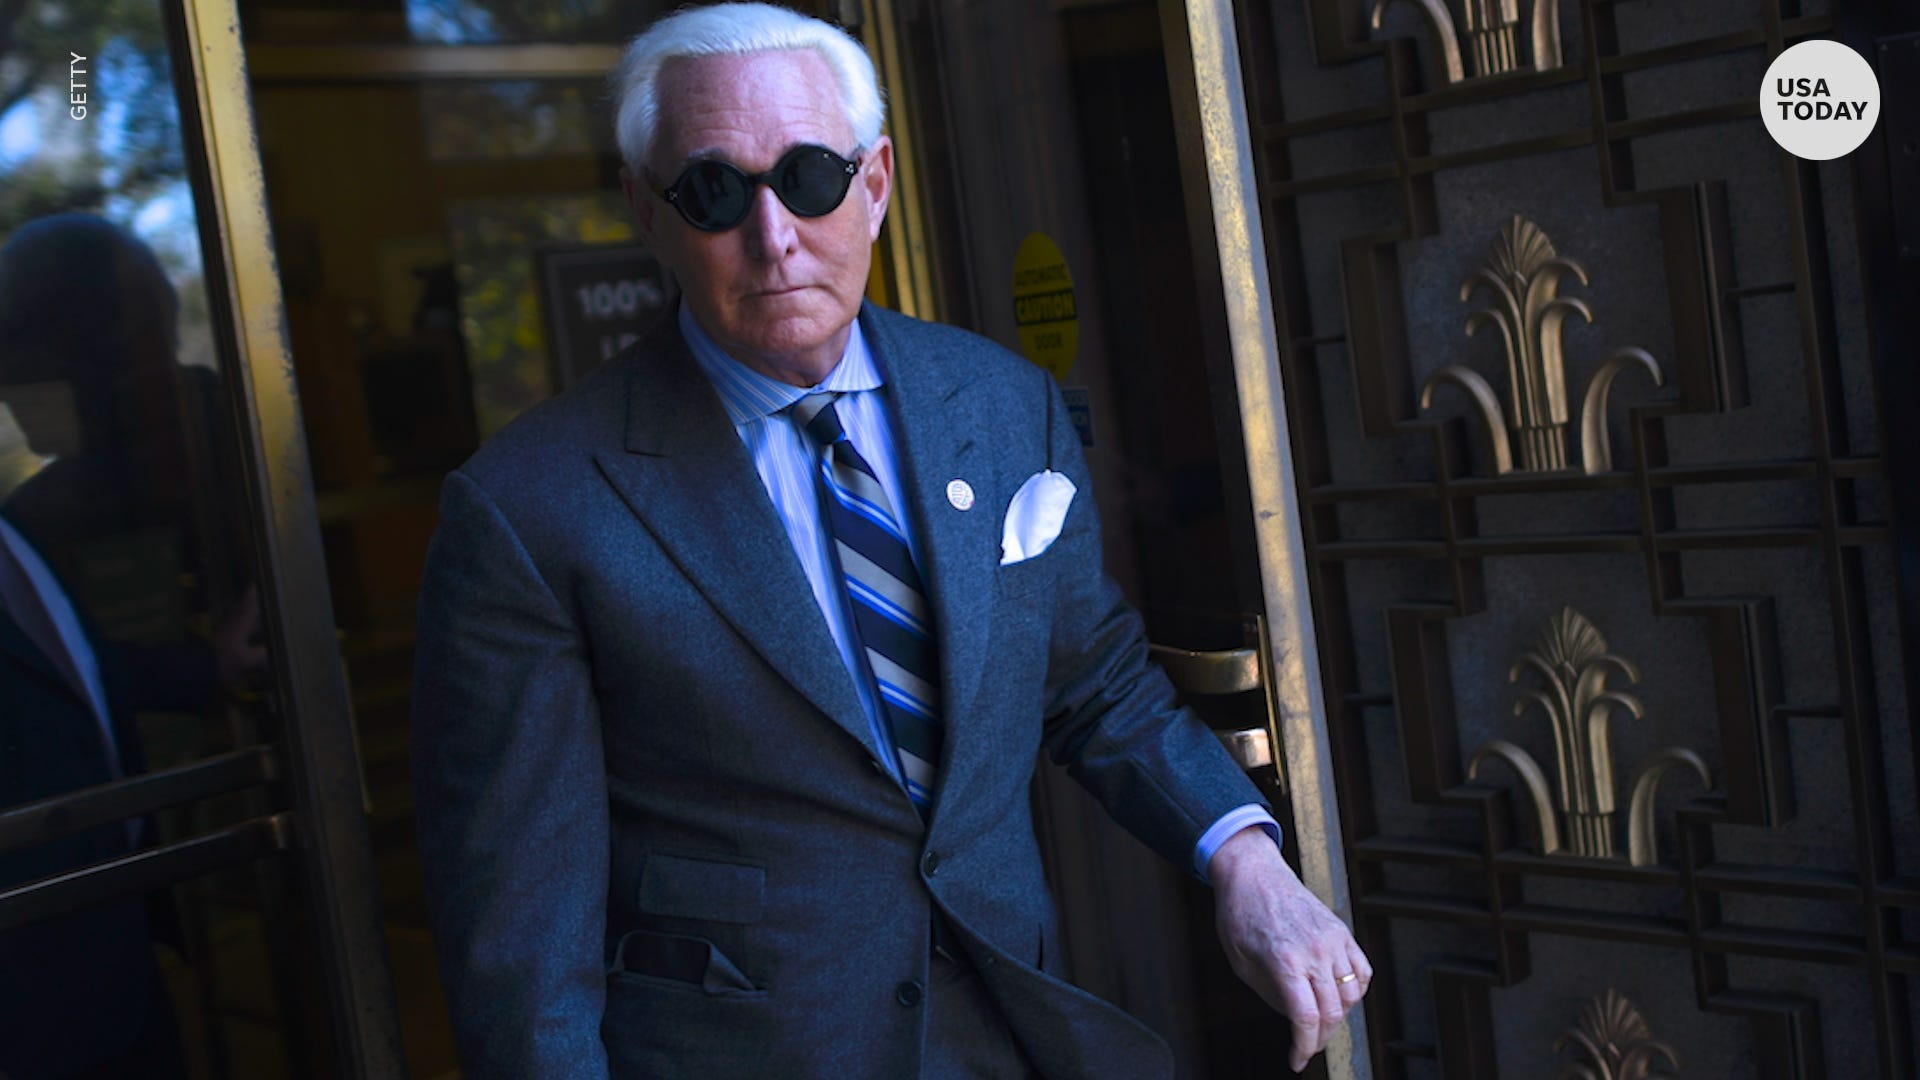 Citing Trump's tweets, judge in Roger Stone case said invading jurors' privacy can have 'chilling effect'